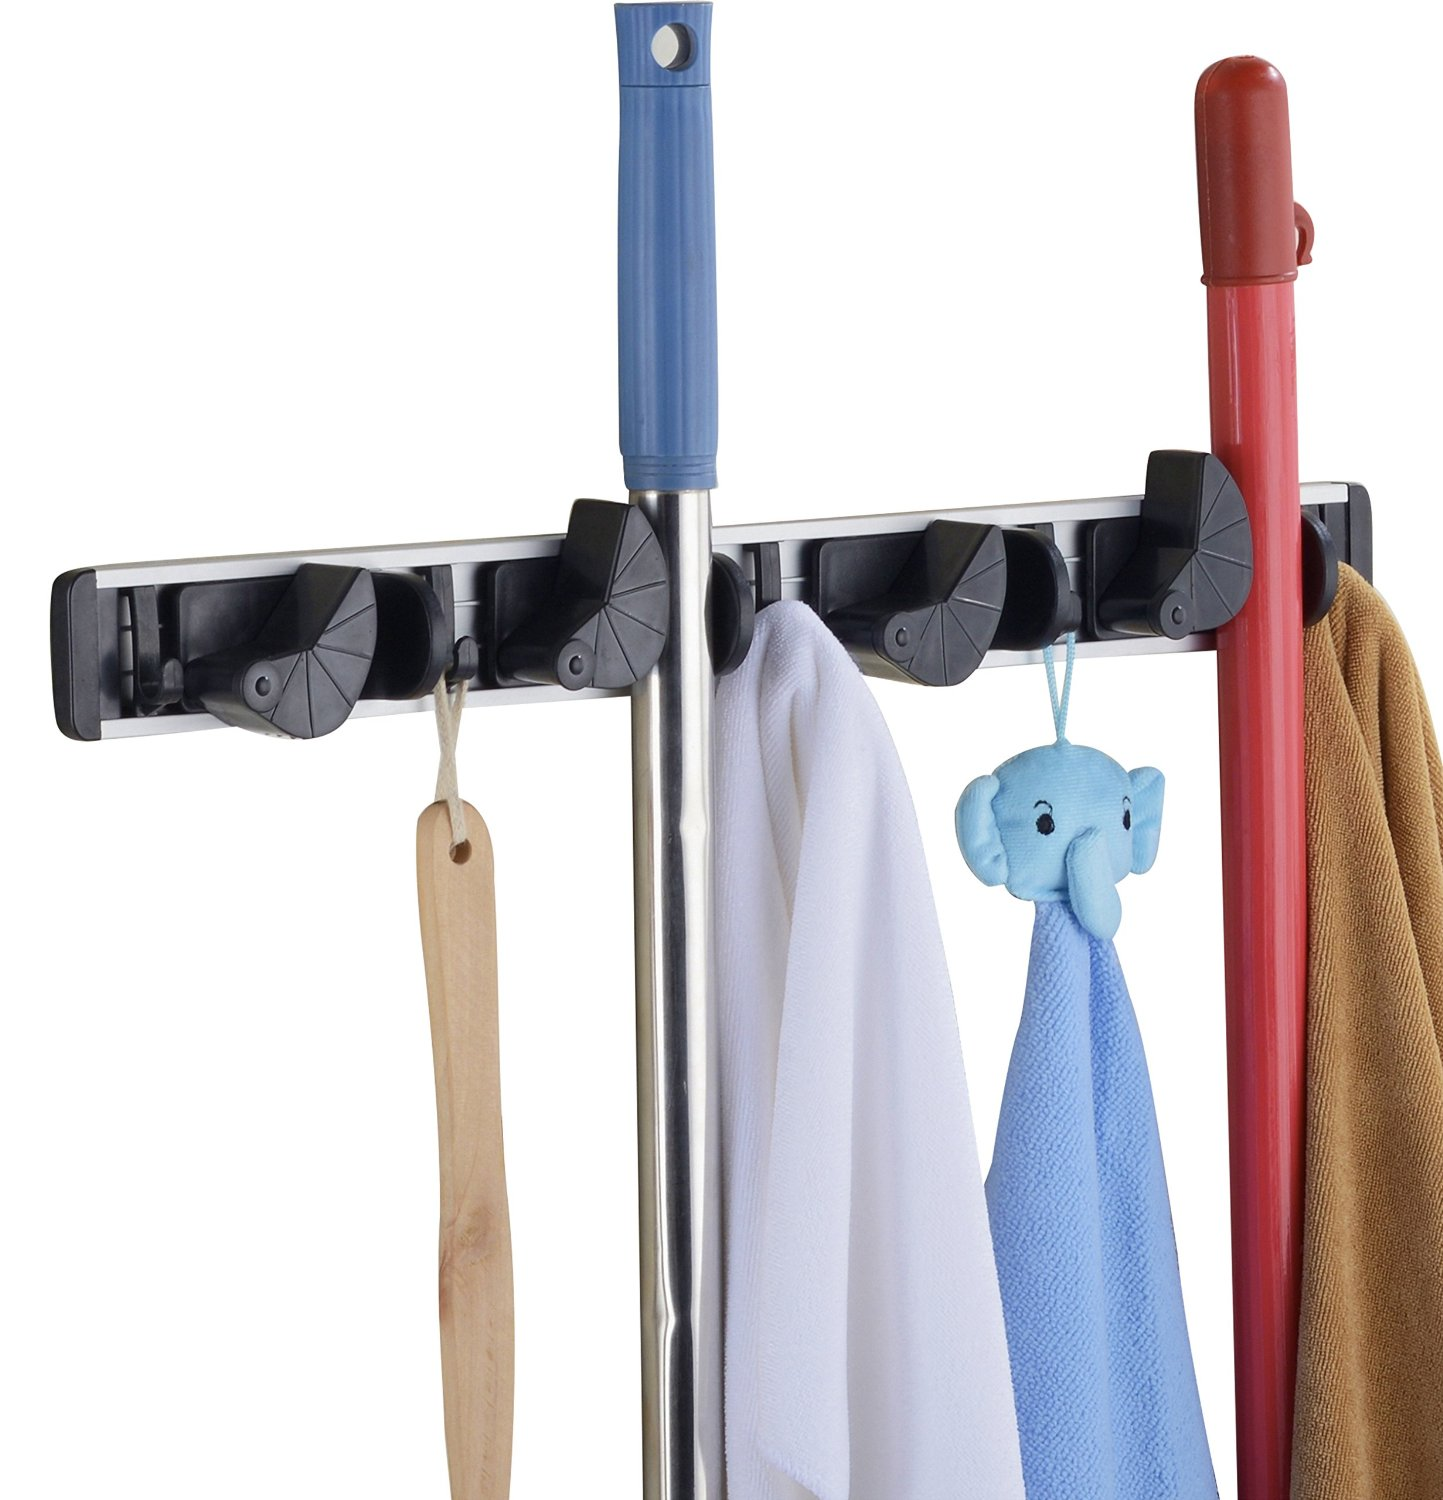 Get Quotations Cavoli Wall Bath Mounted Dust Mop Holders And Broom Organizer